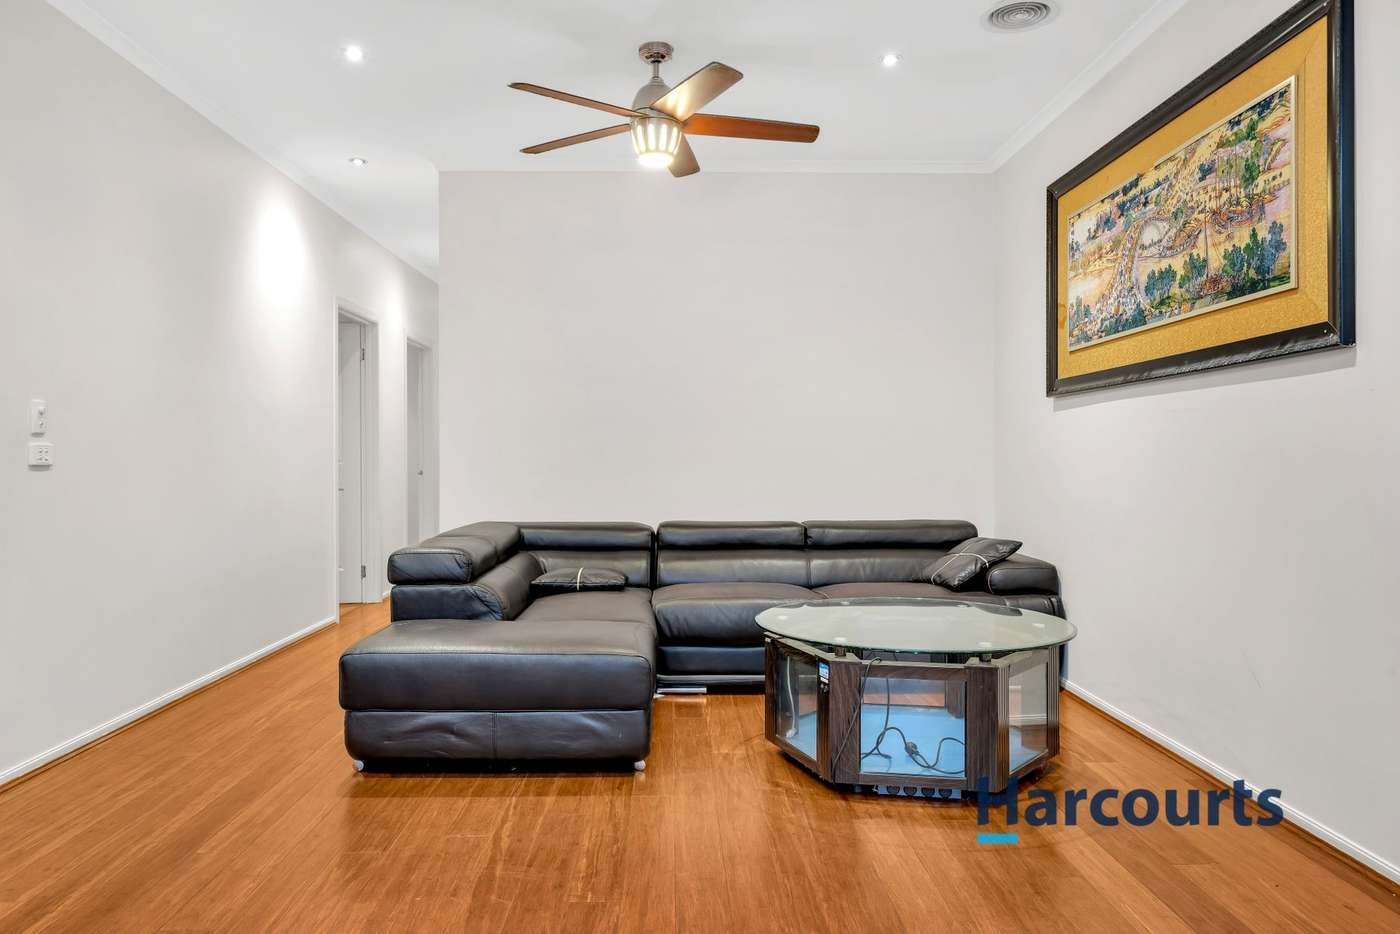 Sixth view of Homely house listing, 10 Daintree Retreat, Caroline Springs VIC 3023